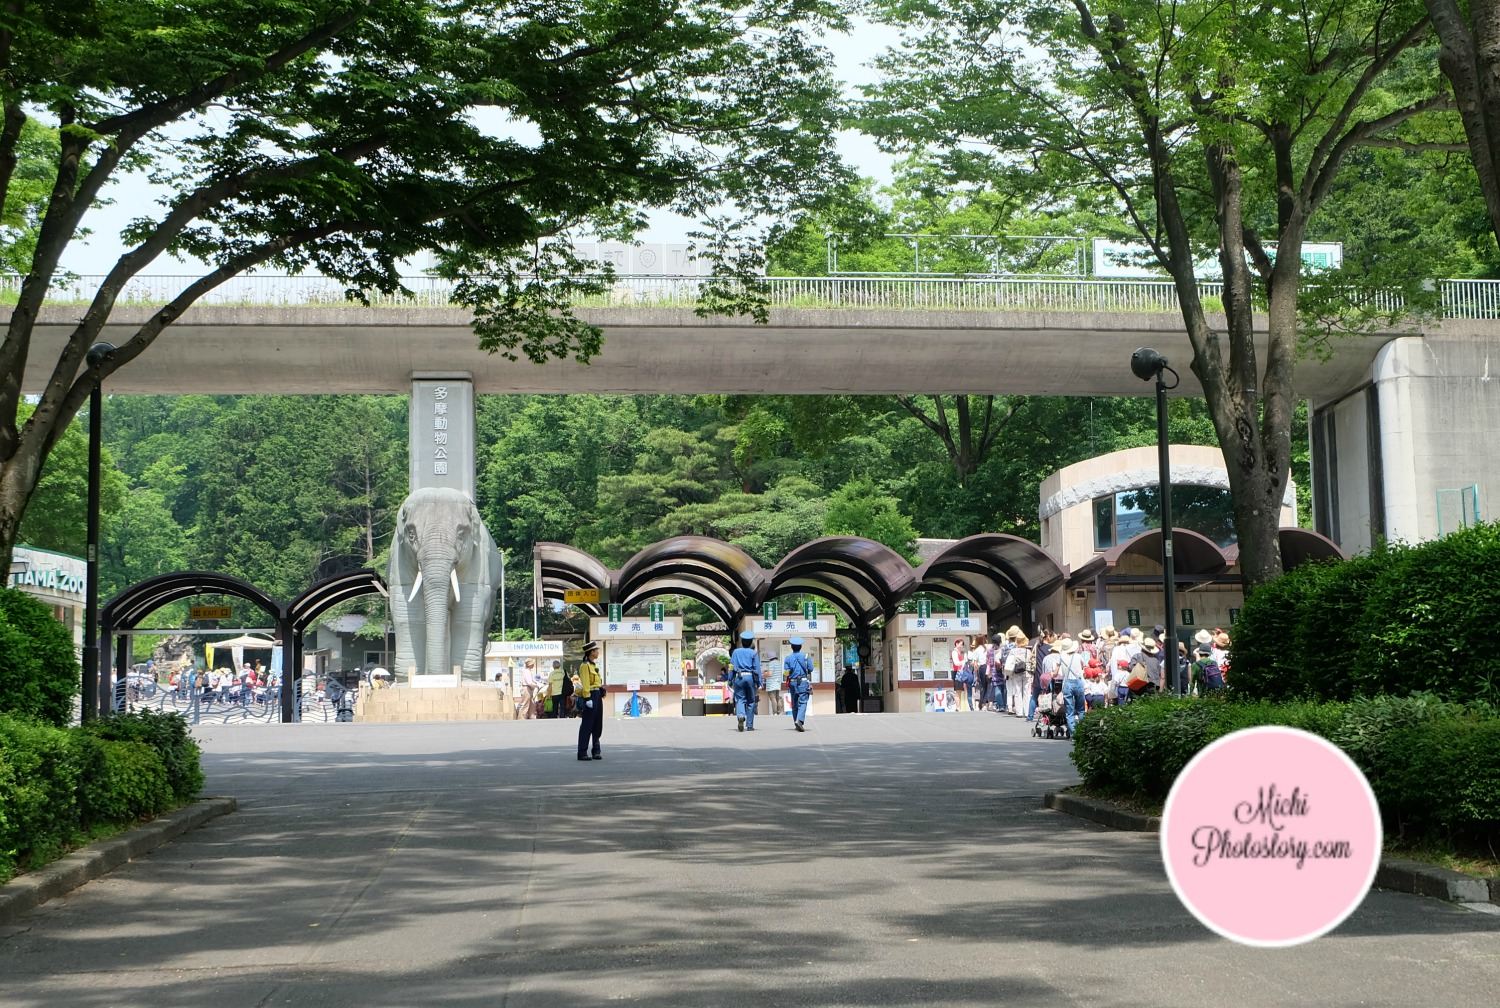 Michi Photostory: Japan Day 3: Tama Zoological Park